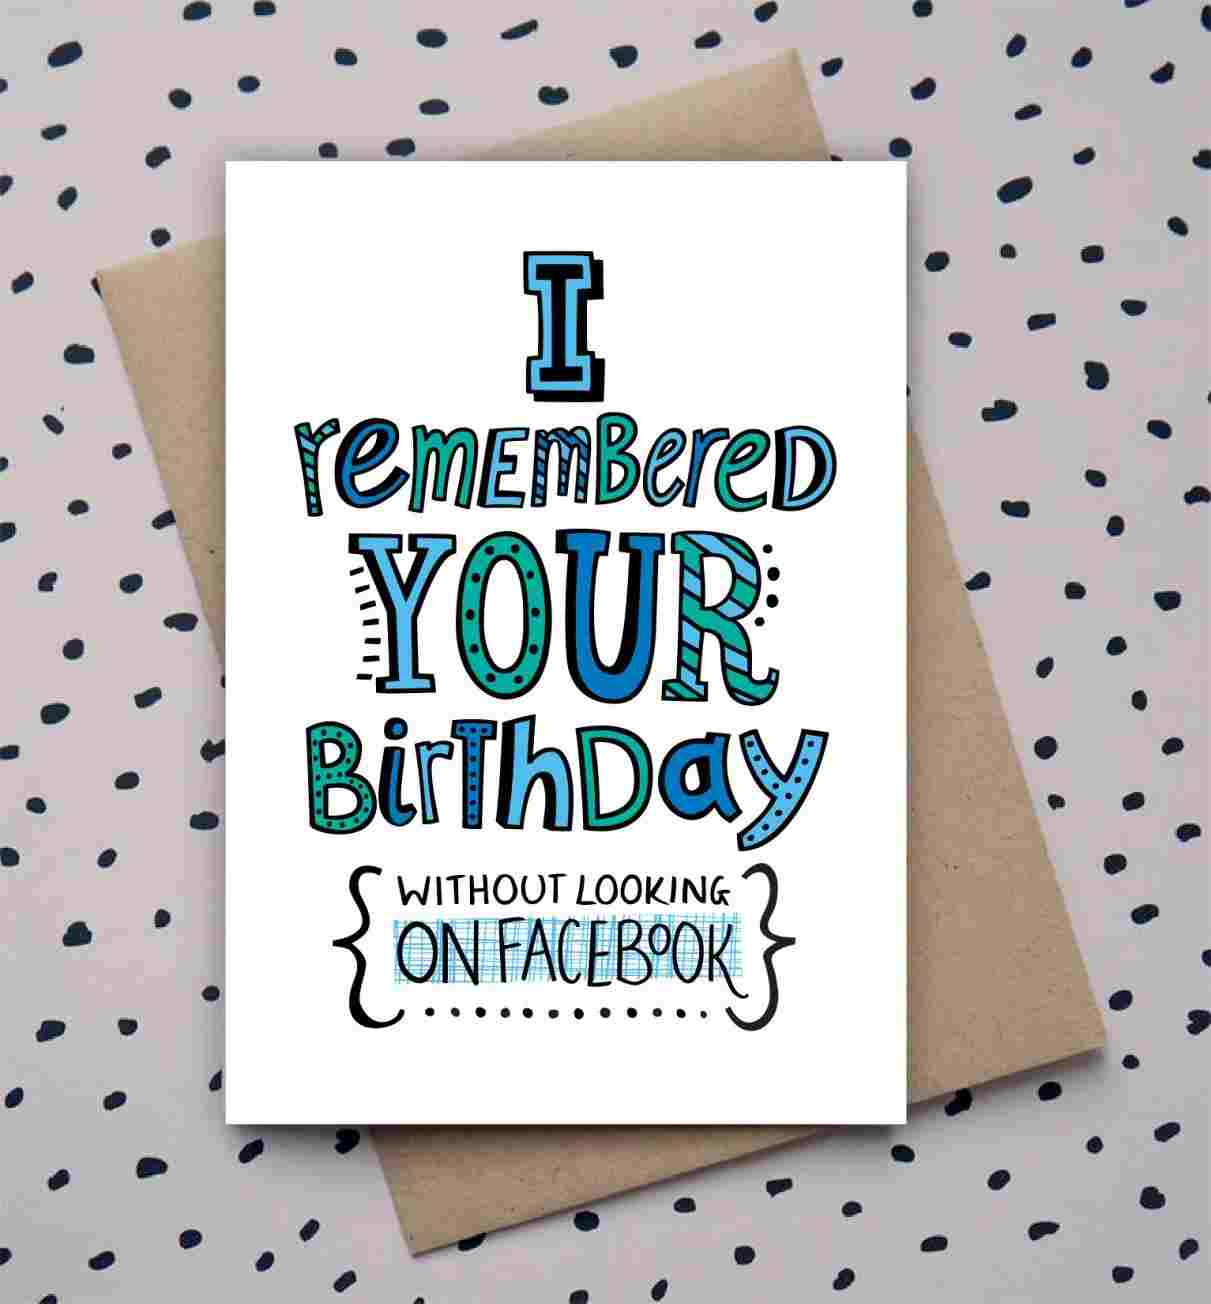 Hand Drawn Birthday Card Ideas Birthday Drawing Ideas At Paintingvalley Explore Collection Of